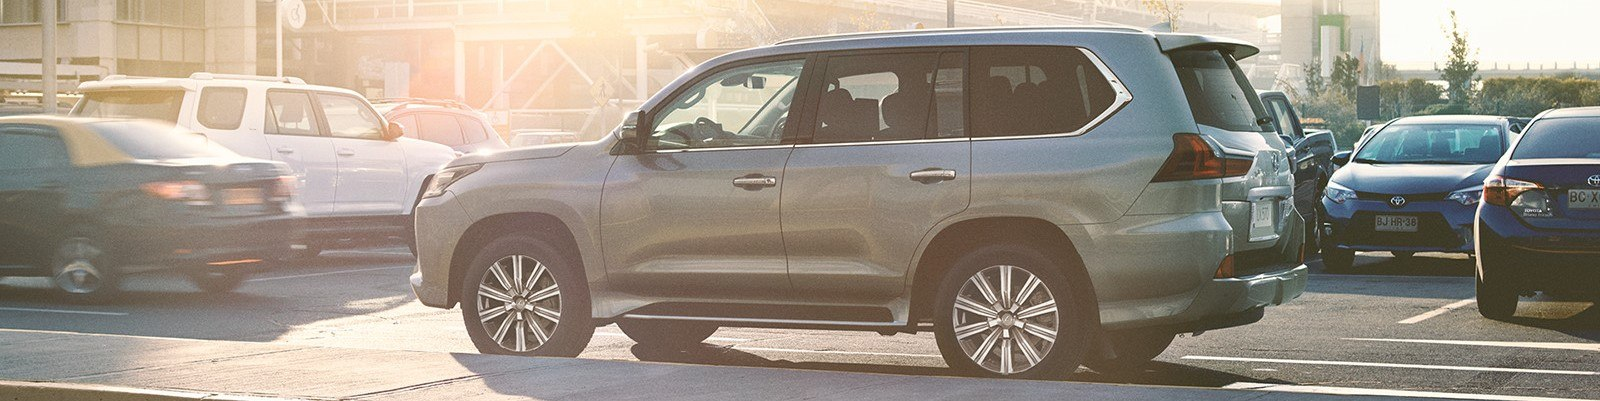 2019 Lexus LX Performance at Ken Shaw Lexus in Toronto